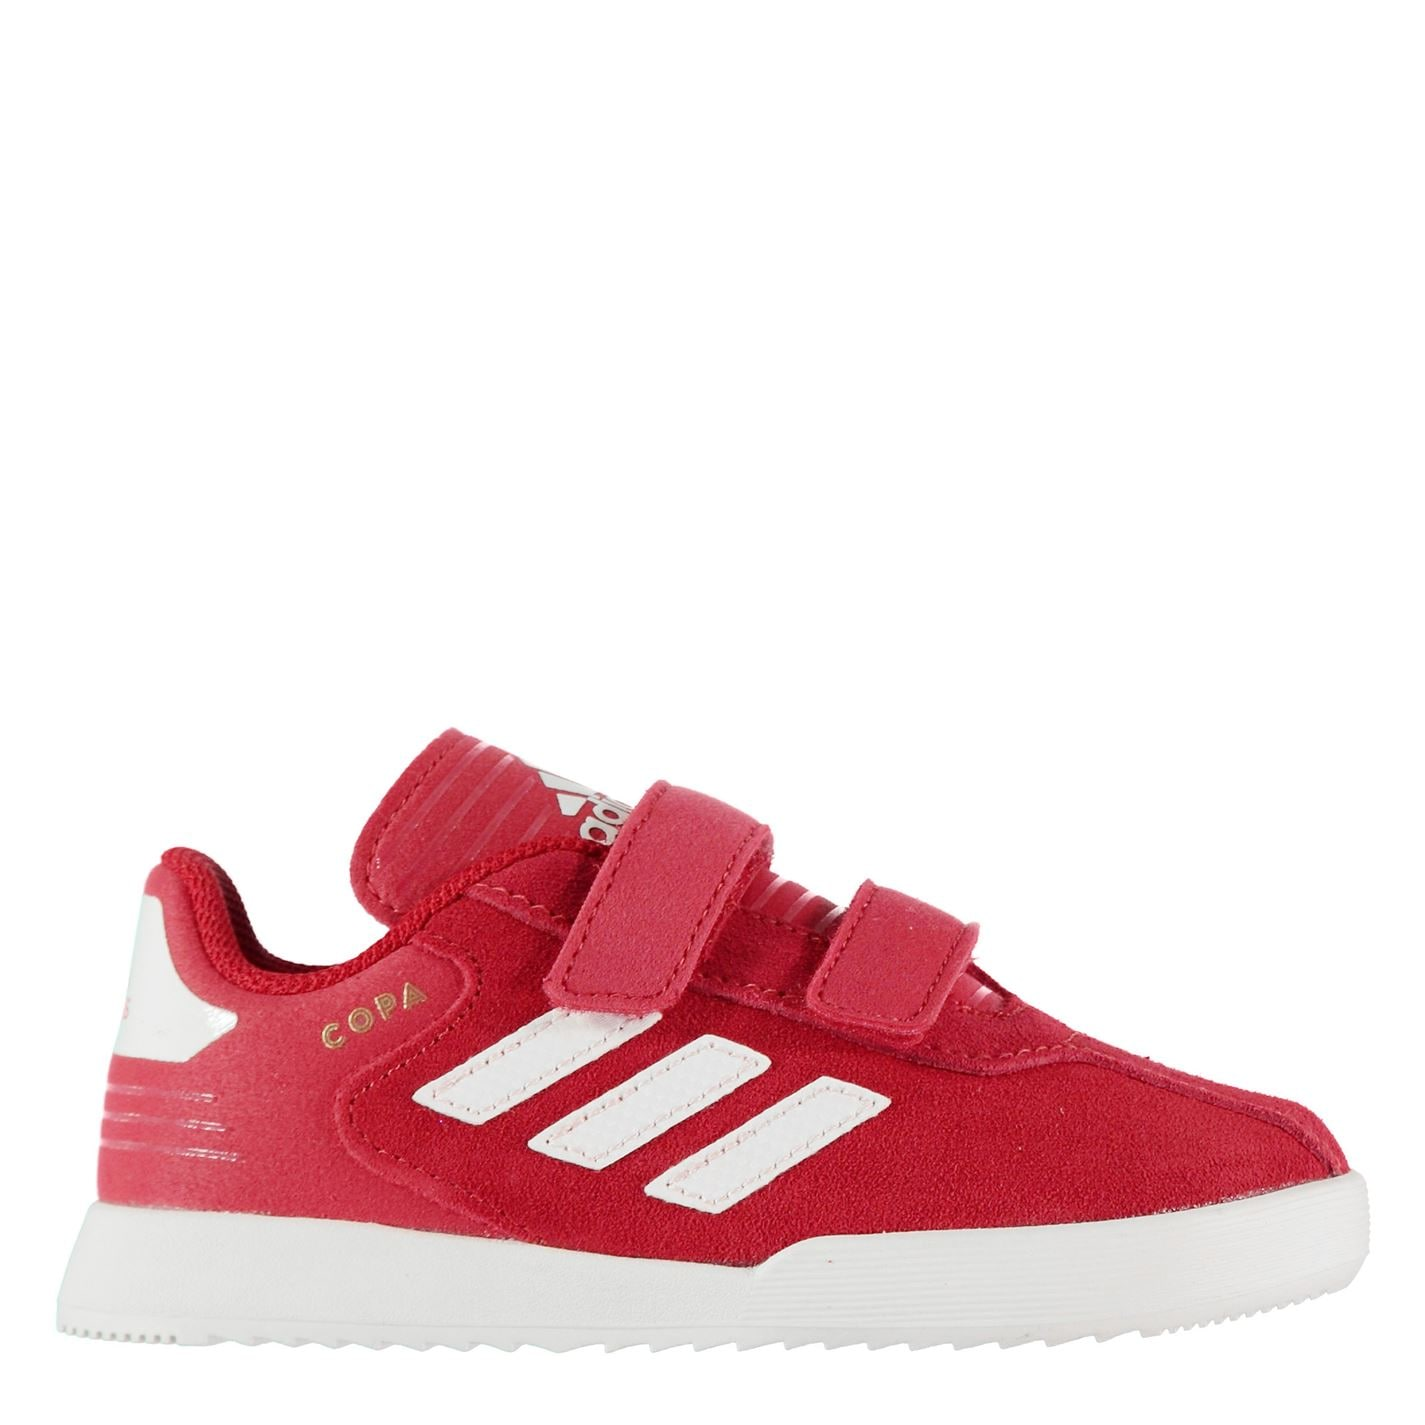 adidas Copa Super Suede Infants Trainers Red/White